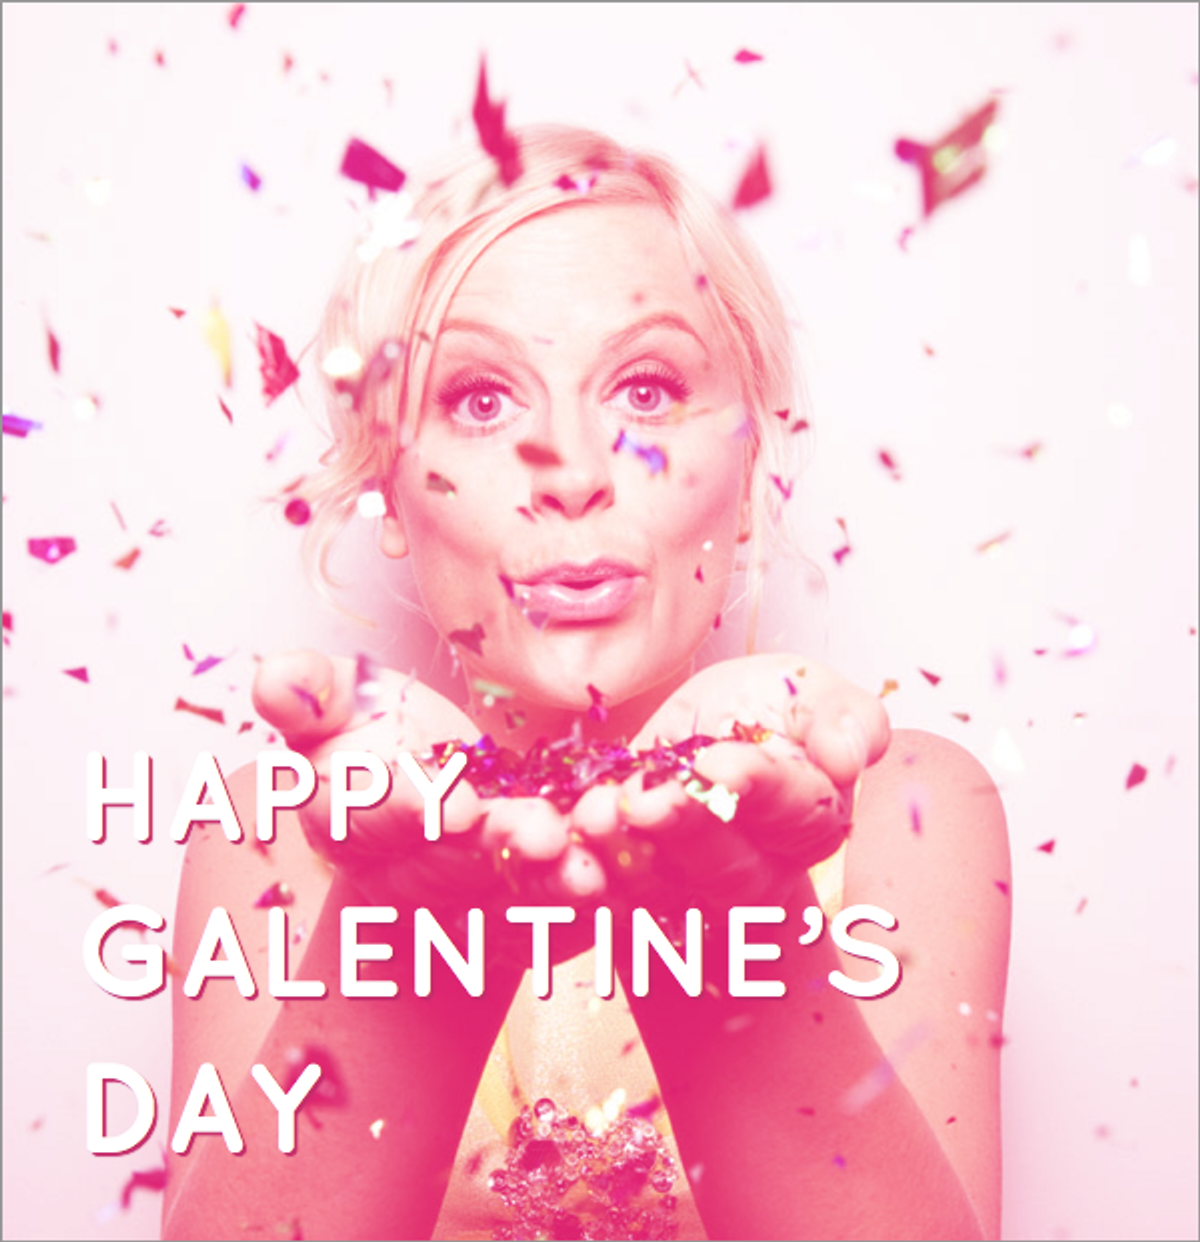 An Open Letter to my Galentines